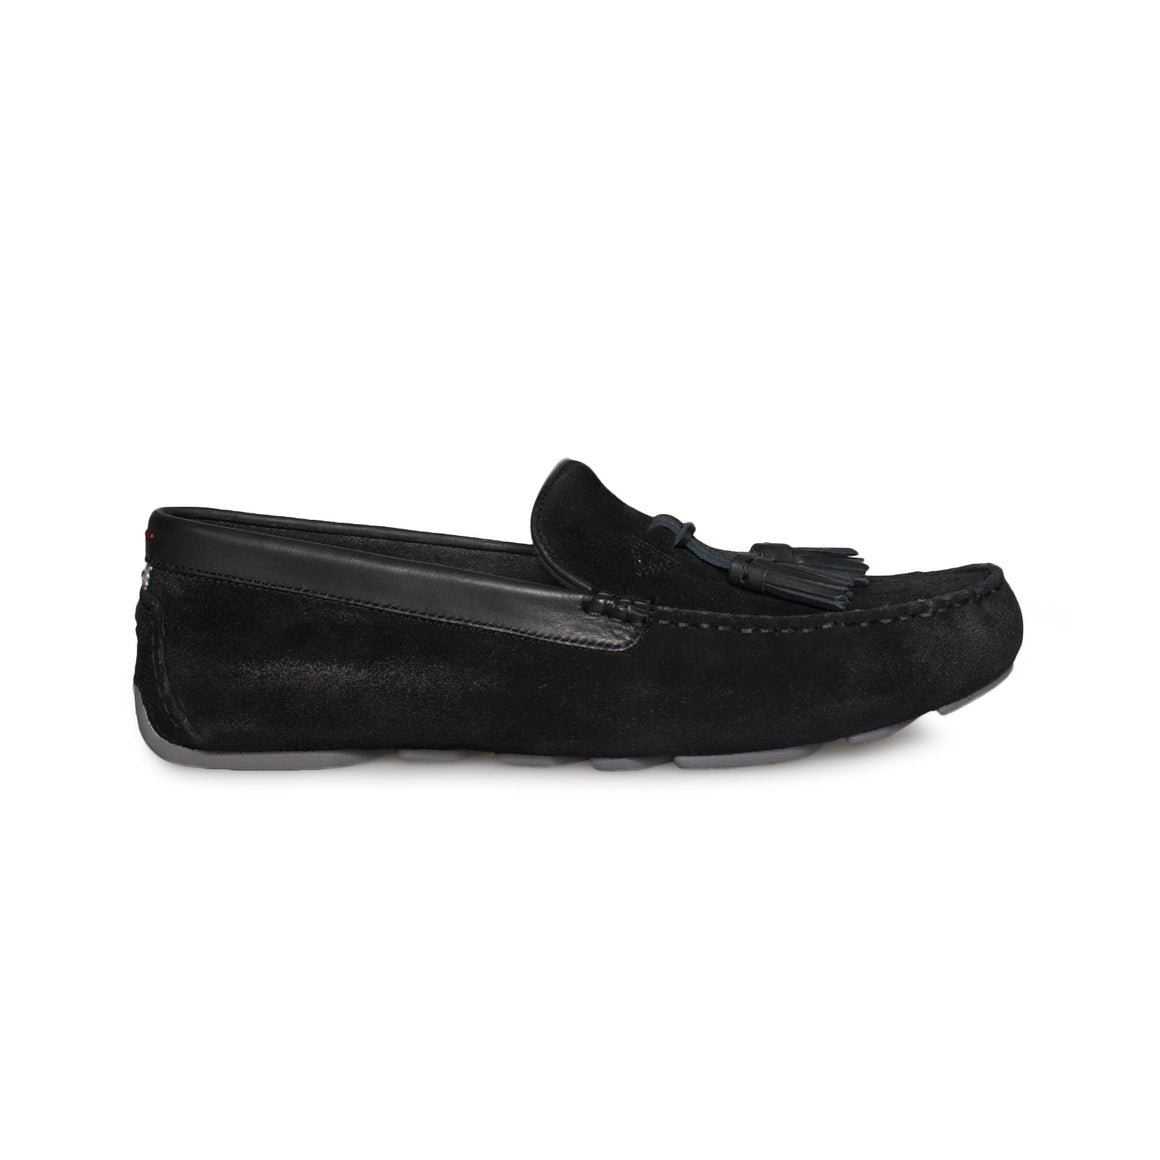 UGG Marris Black Shoes - Men's